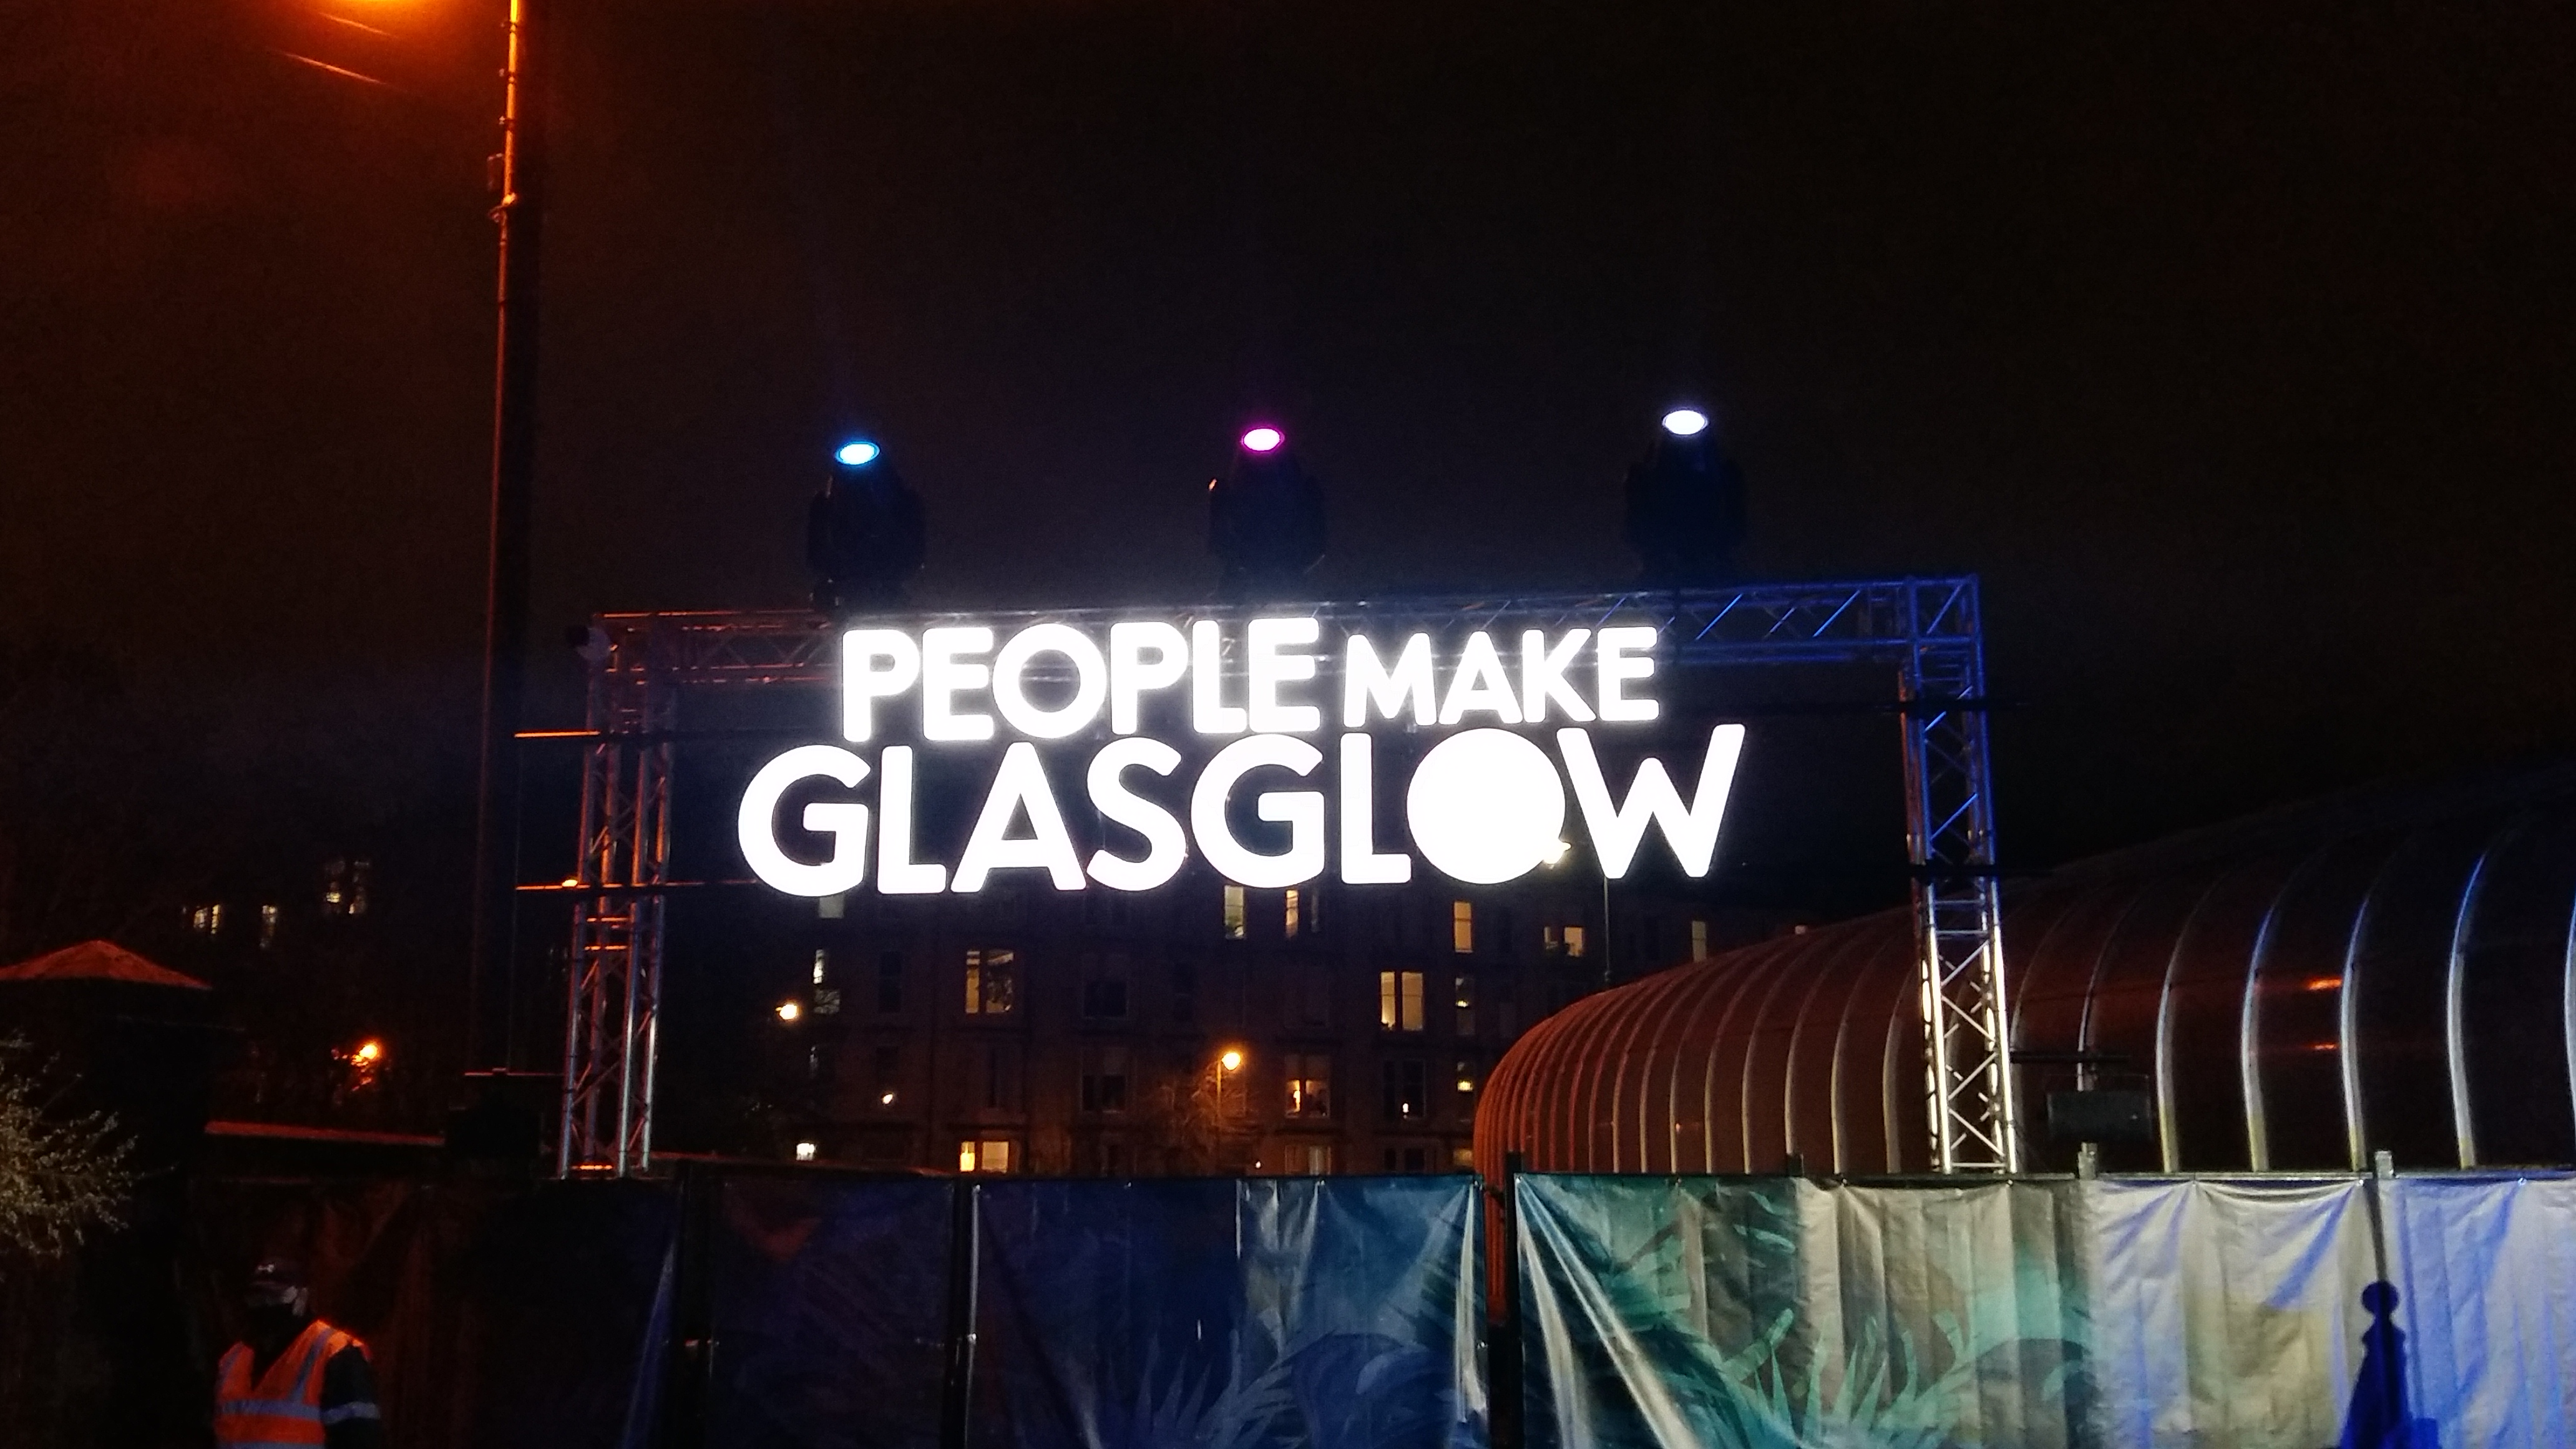 GlasGLOW: Parks, commercial events and the pandemic